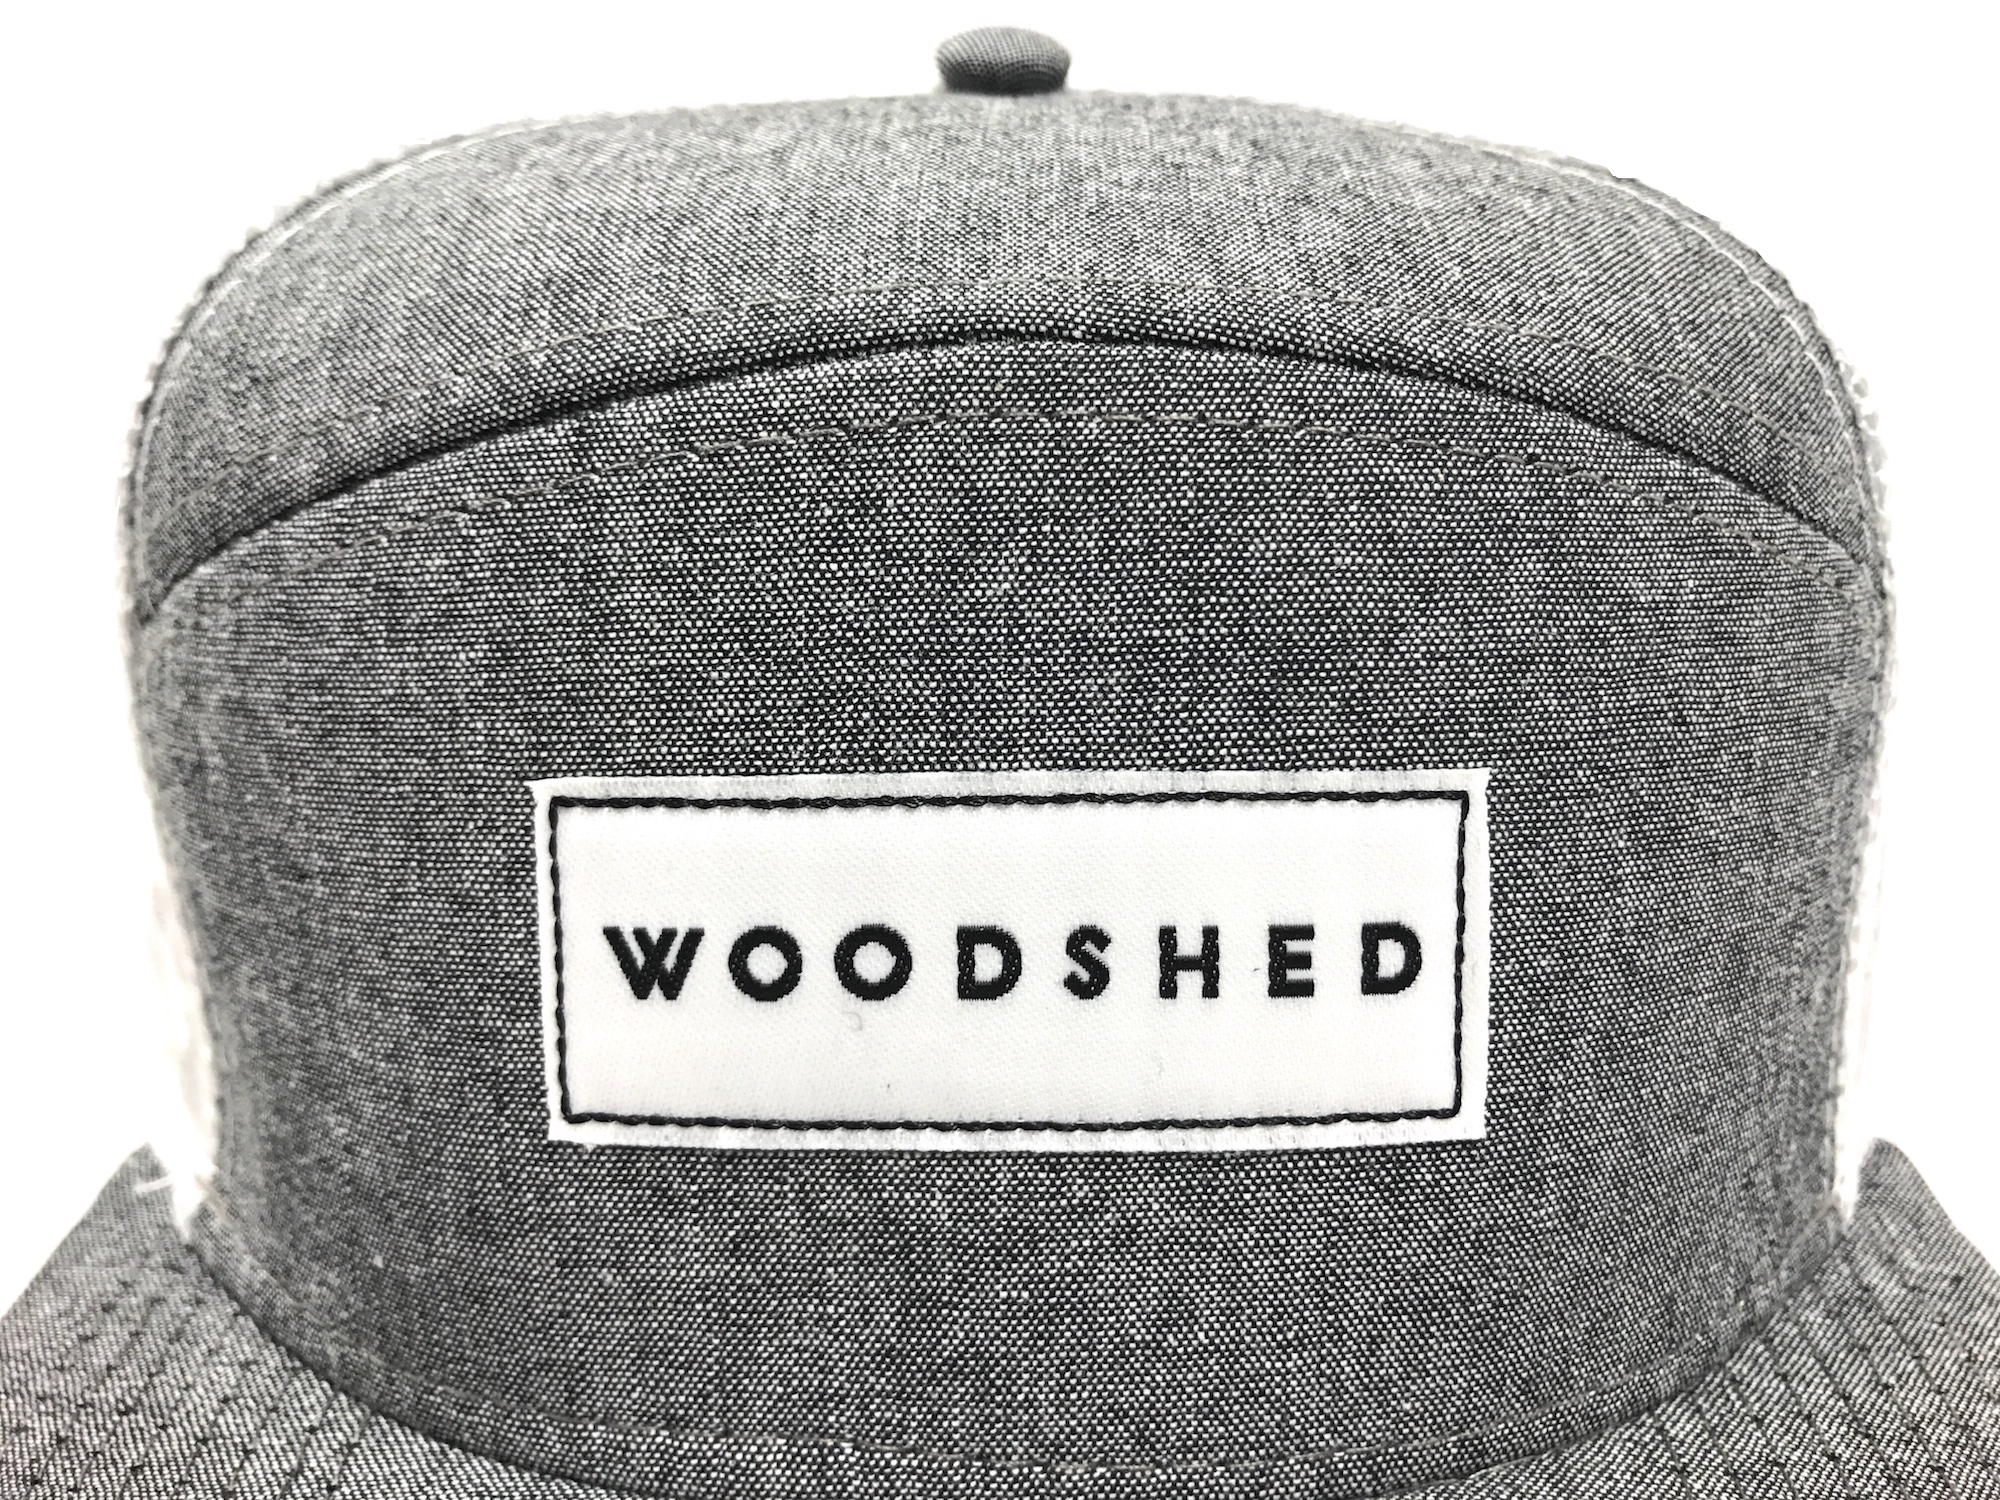 Woodshed Standard Chambray Closeup